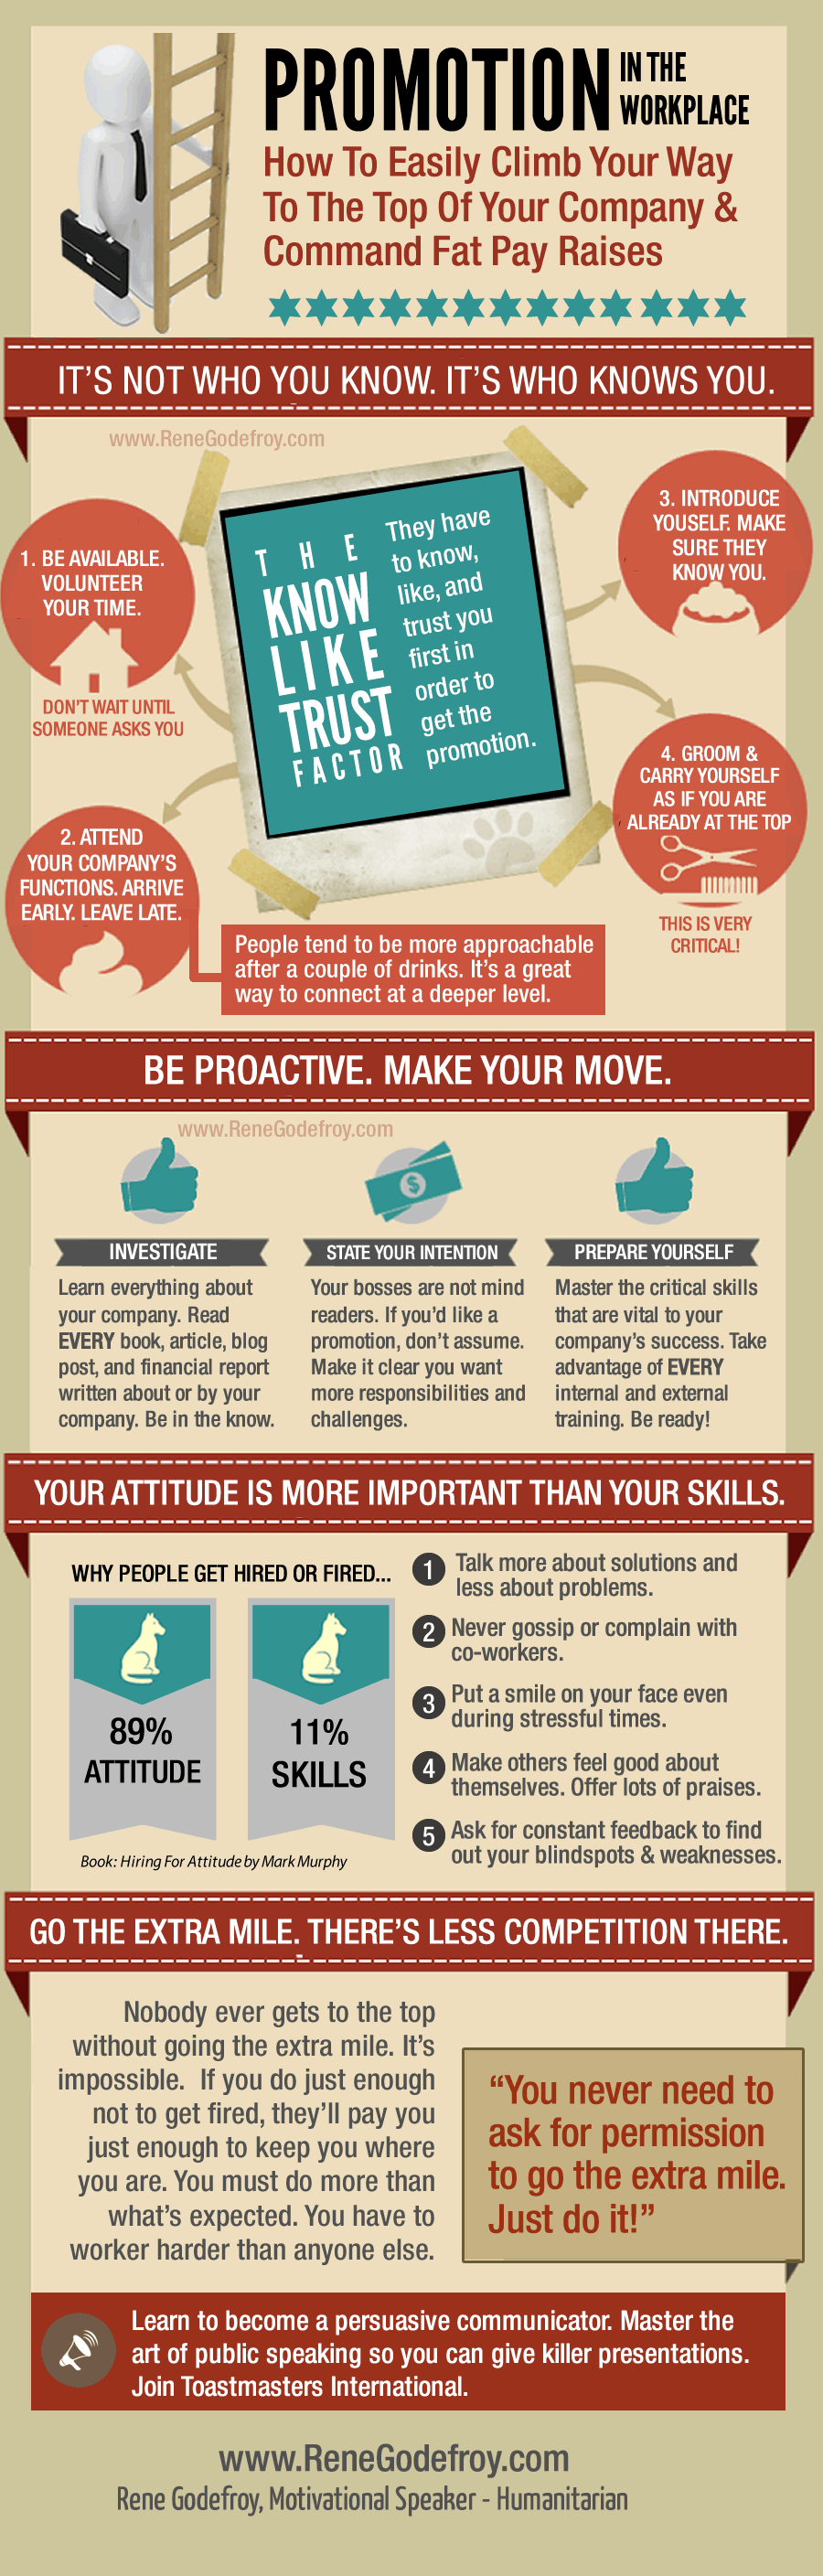 How to get promoted in the workplace infographic